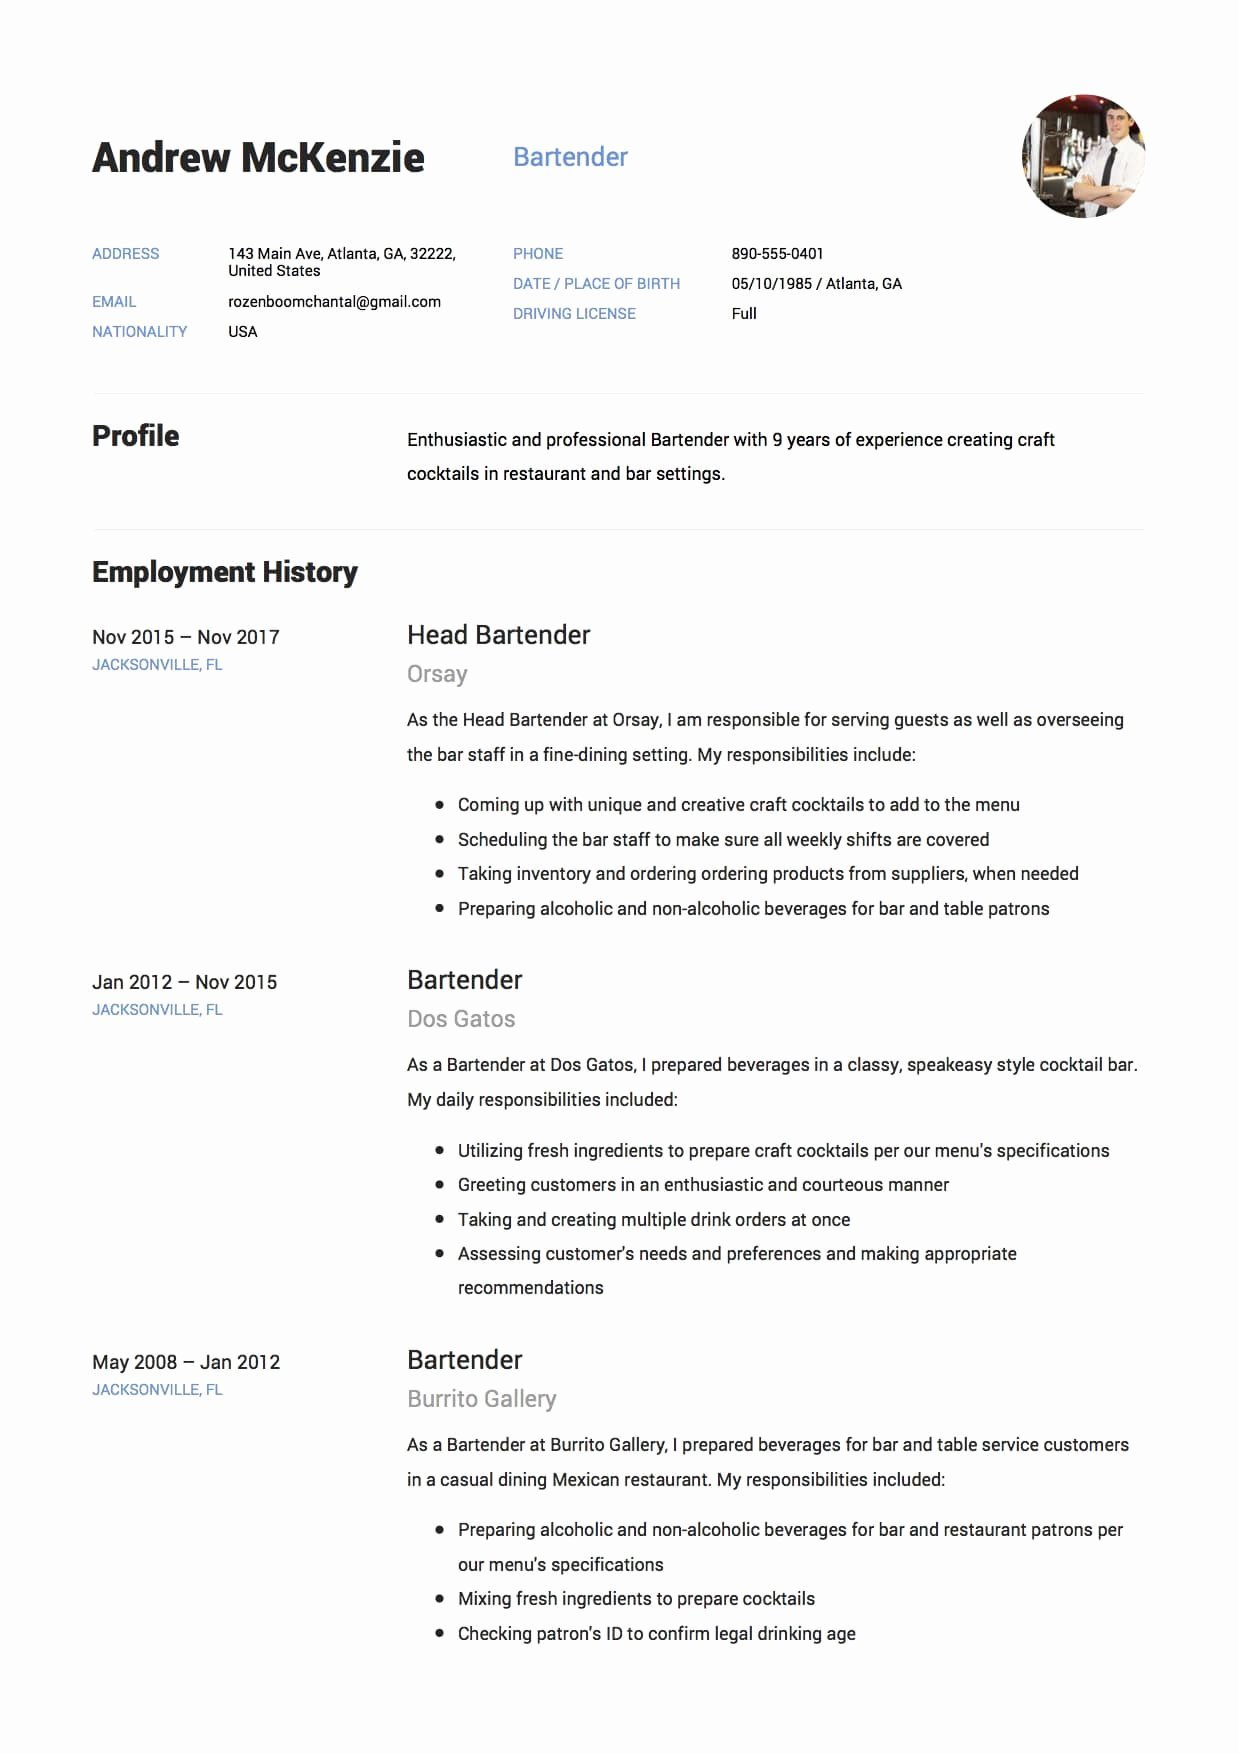 Bartender Resume Sample 12 Creative Resume Examples